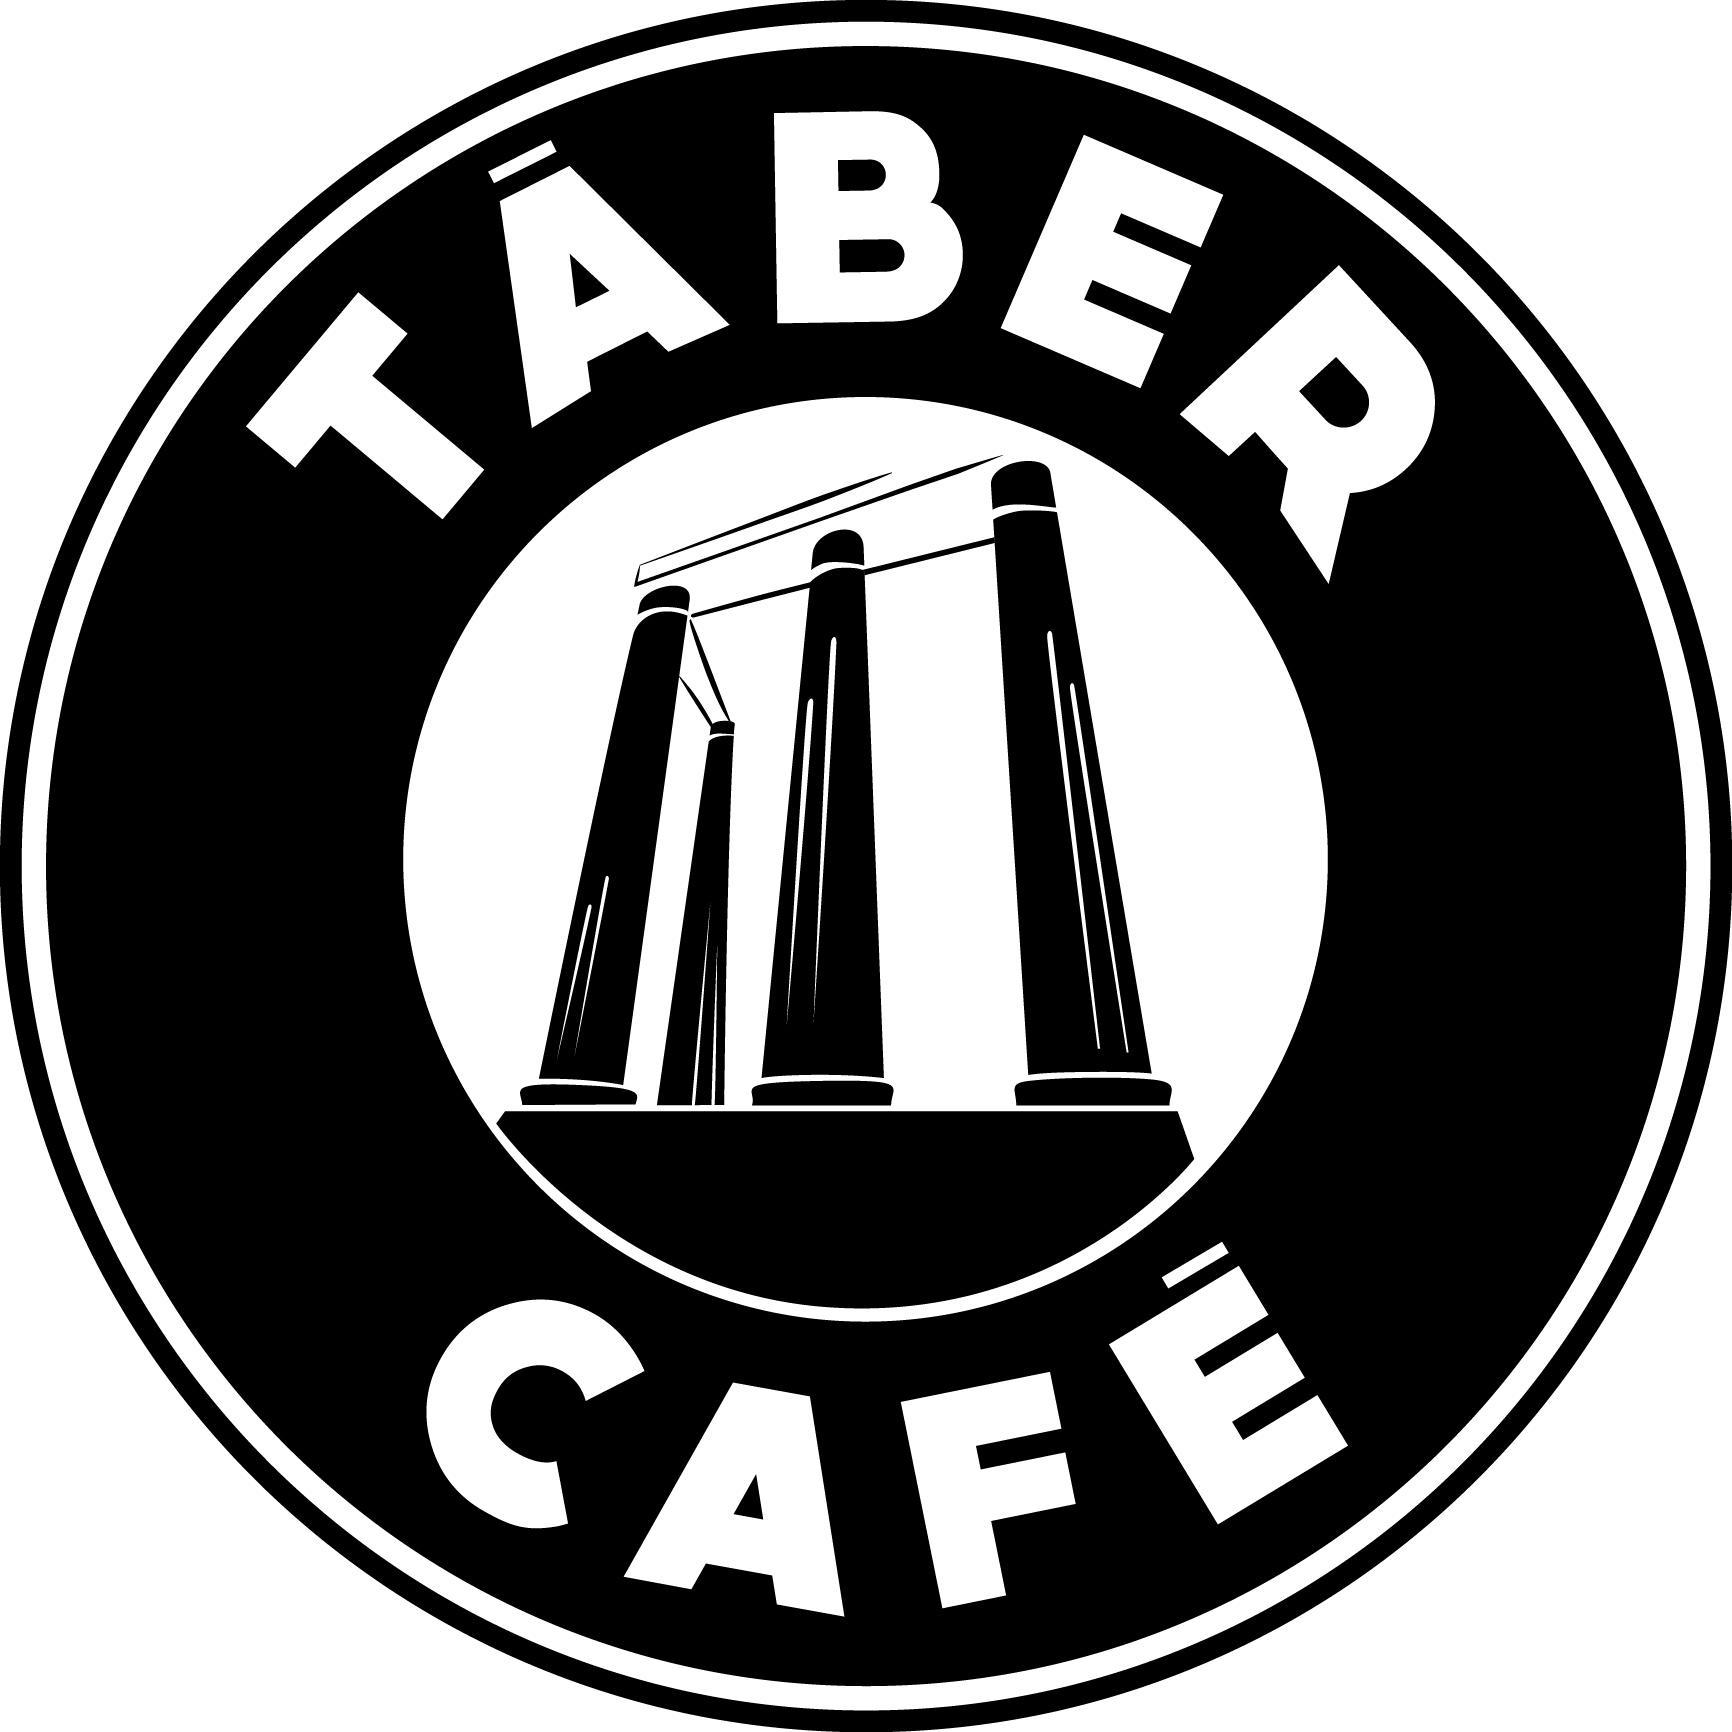 TABER CAFE (@TaberCafe).